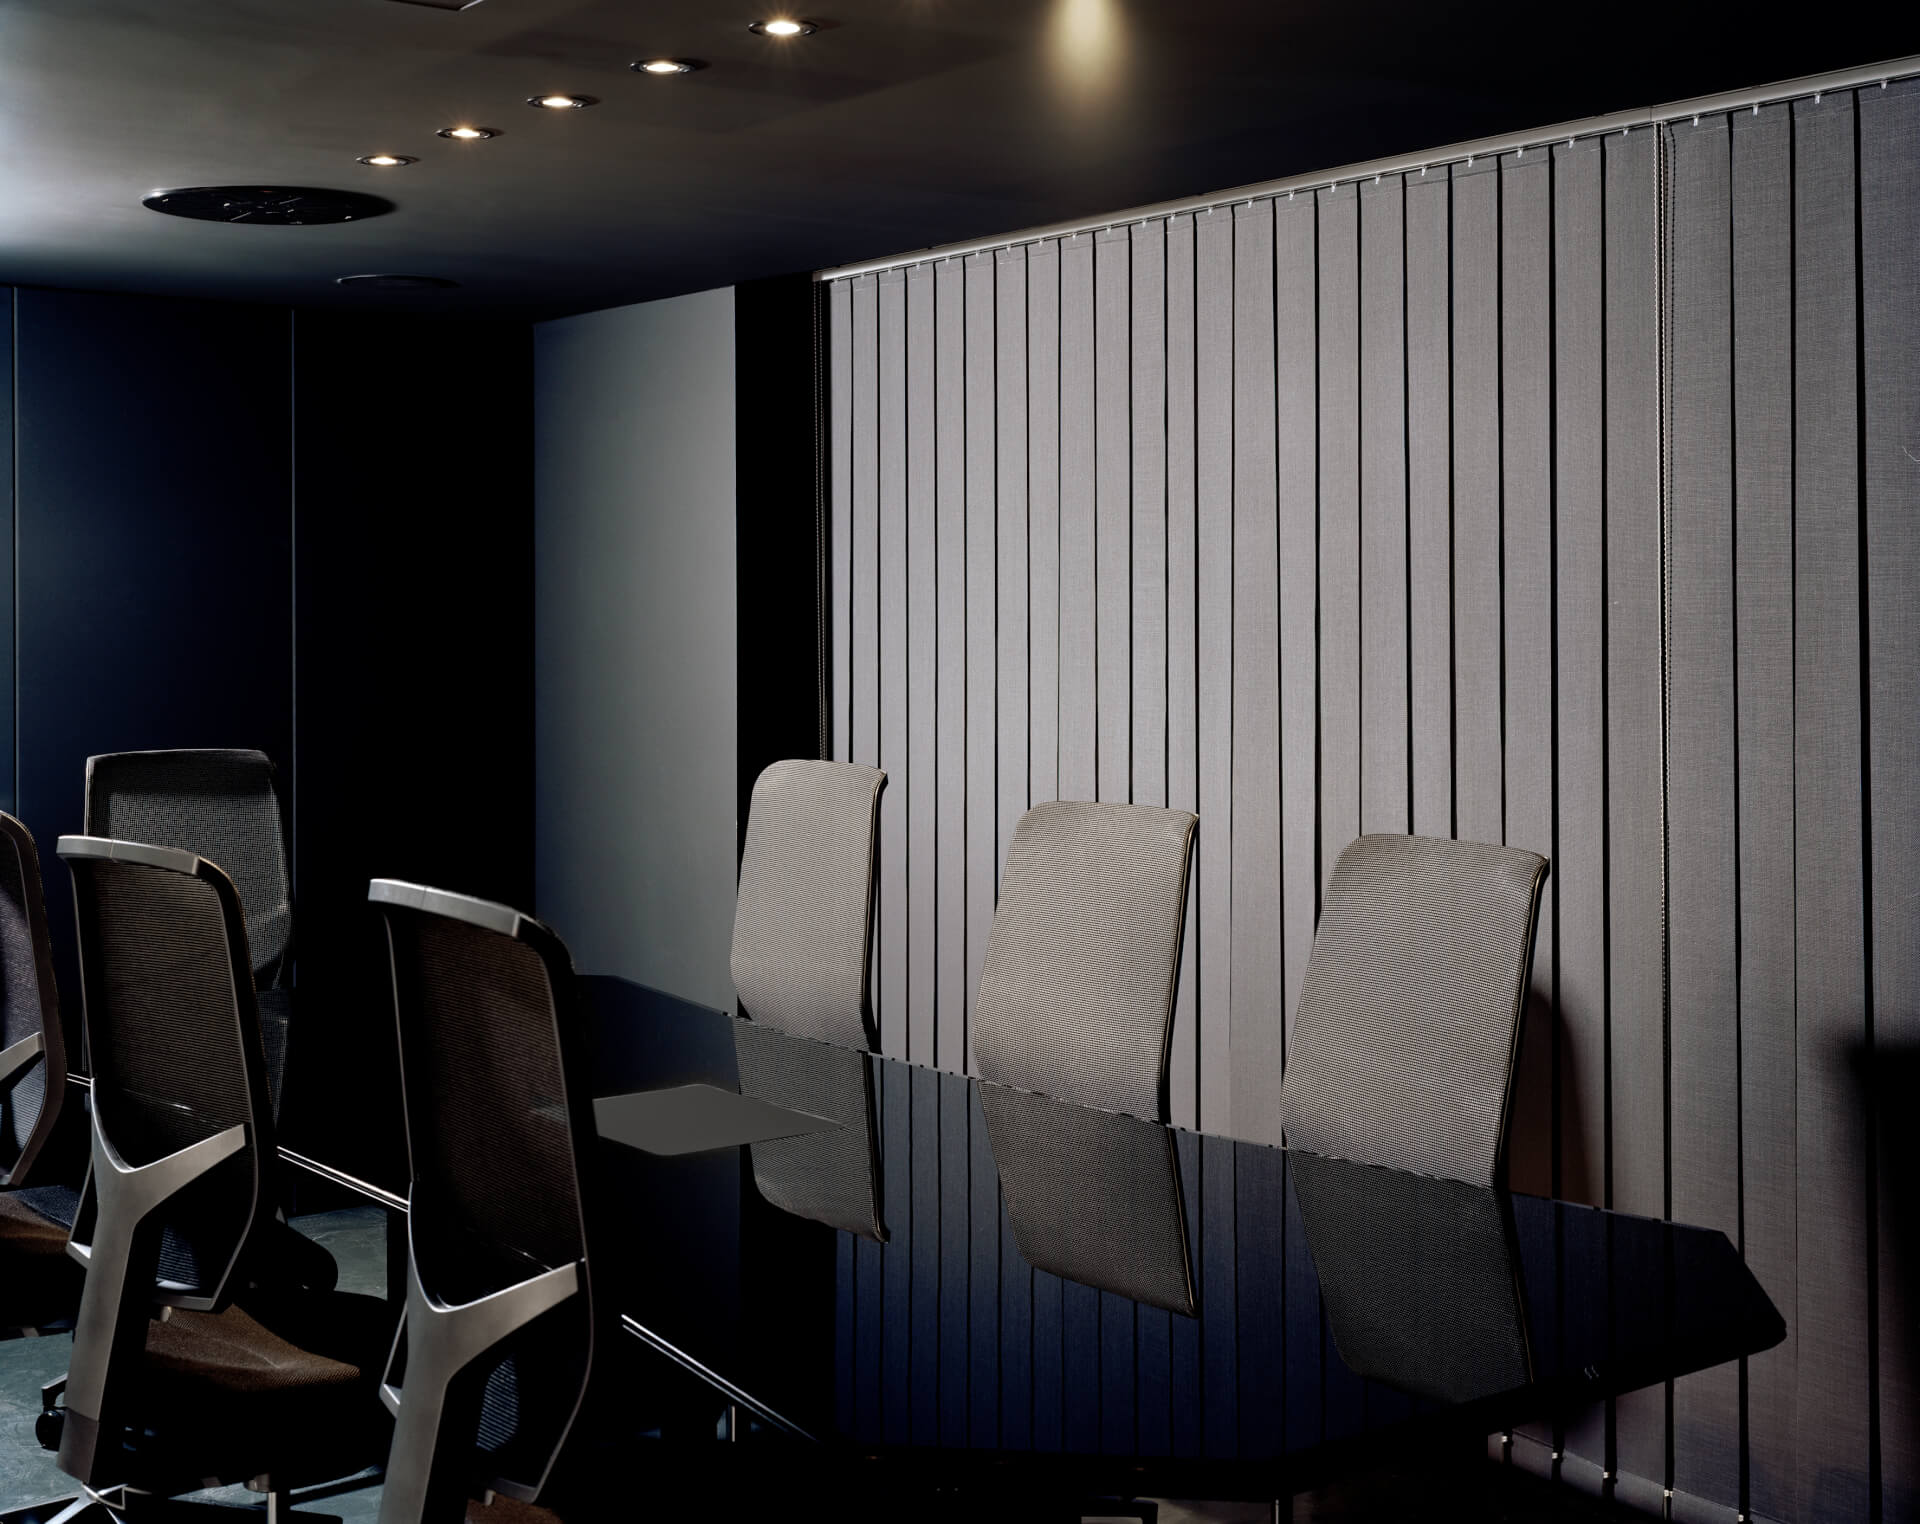 Soundproofing conference rooms and office spaces